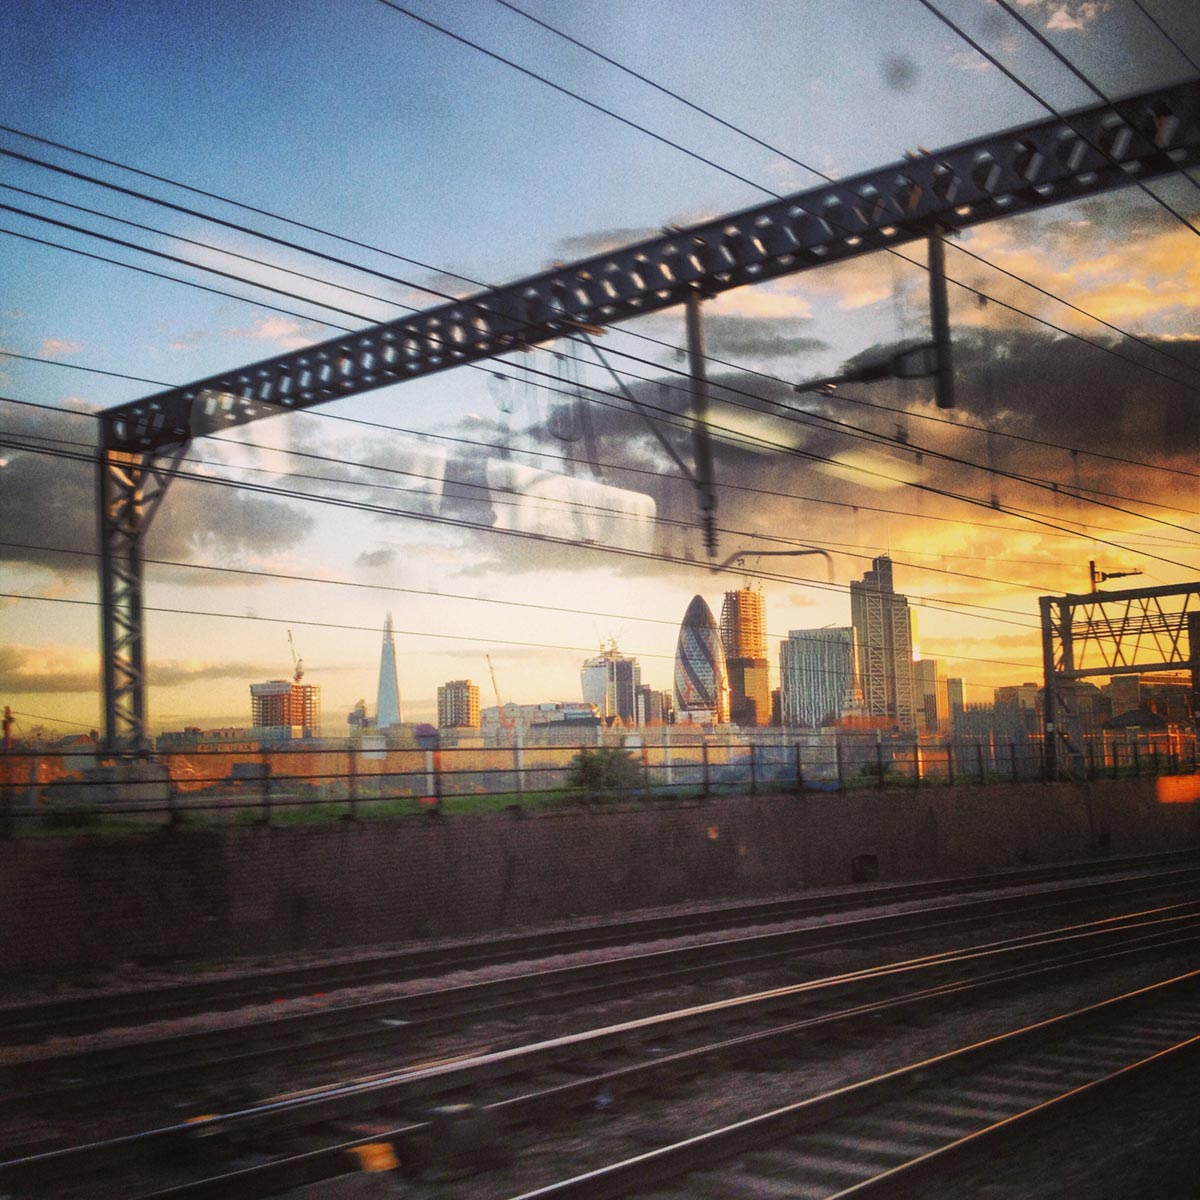 City of London sunset